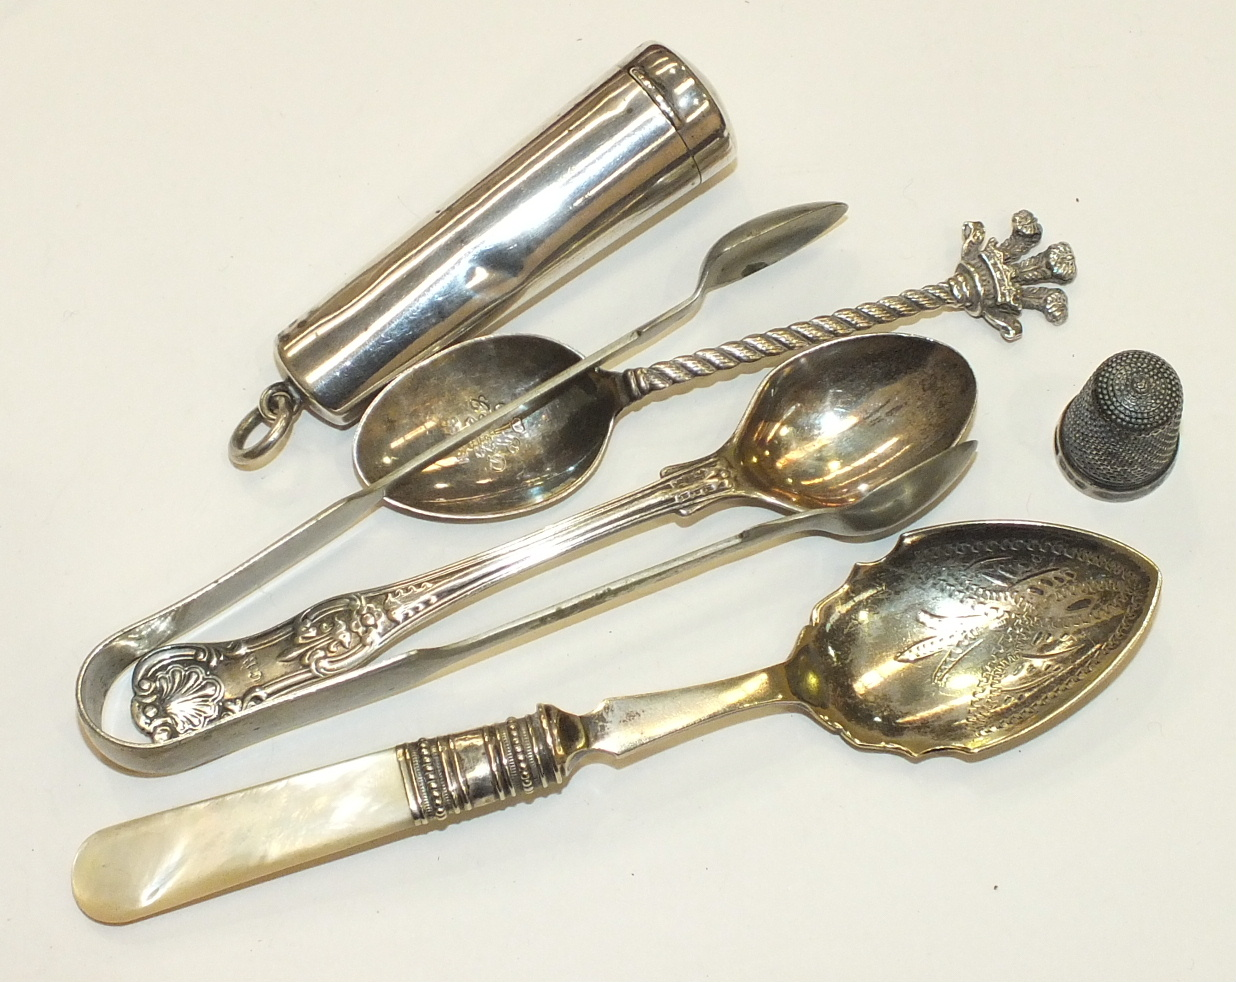 Lot 185 - A silver cheroot case with amber cheroot holder, a silver teaspoon with Prince of Wales feathers and